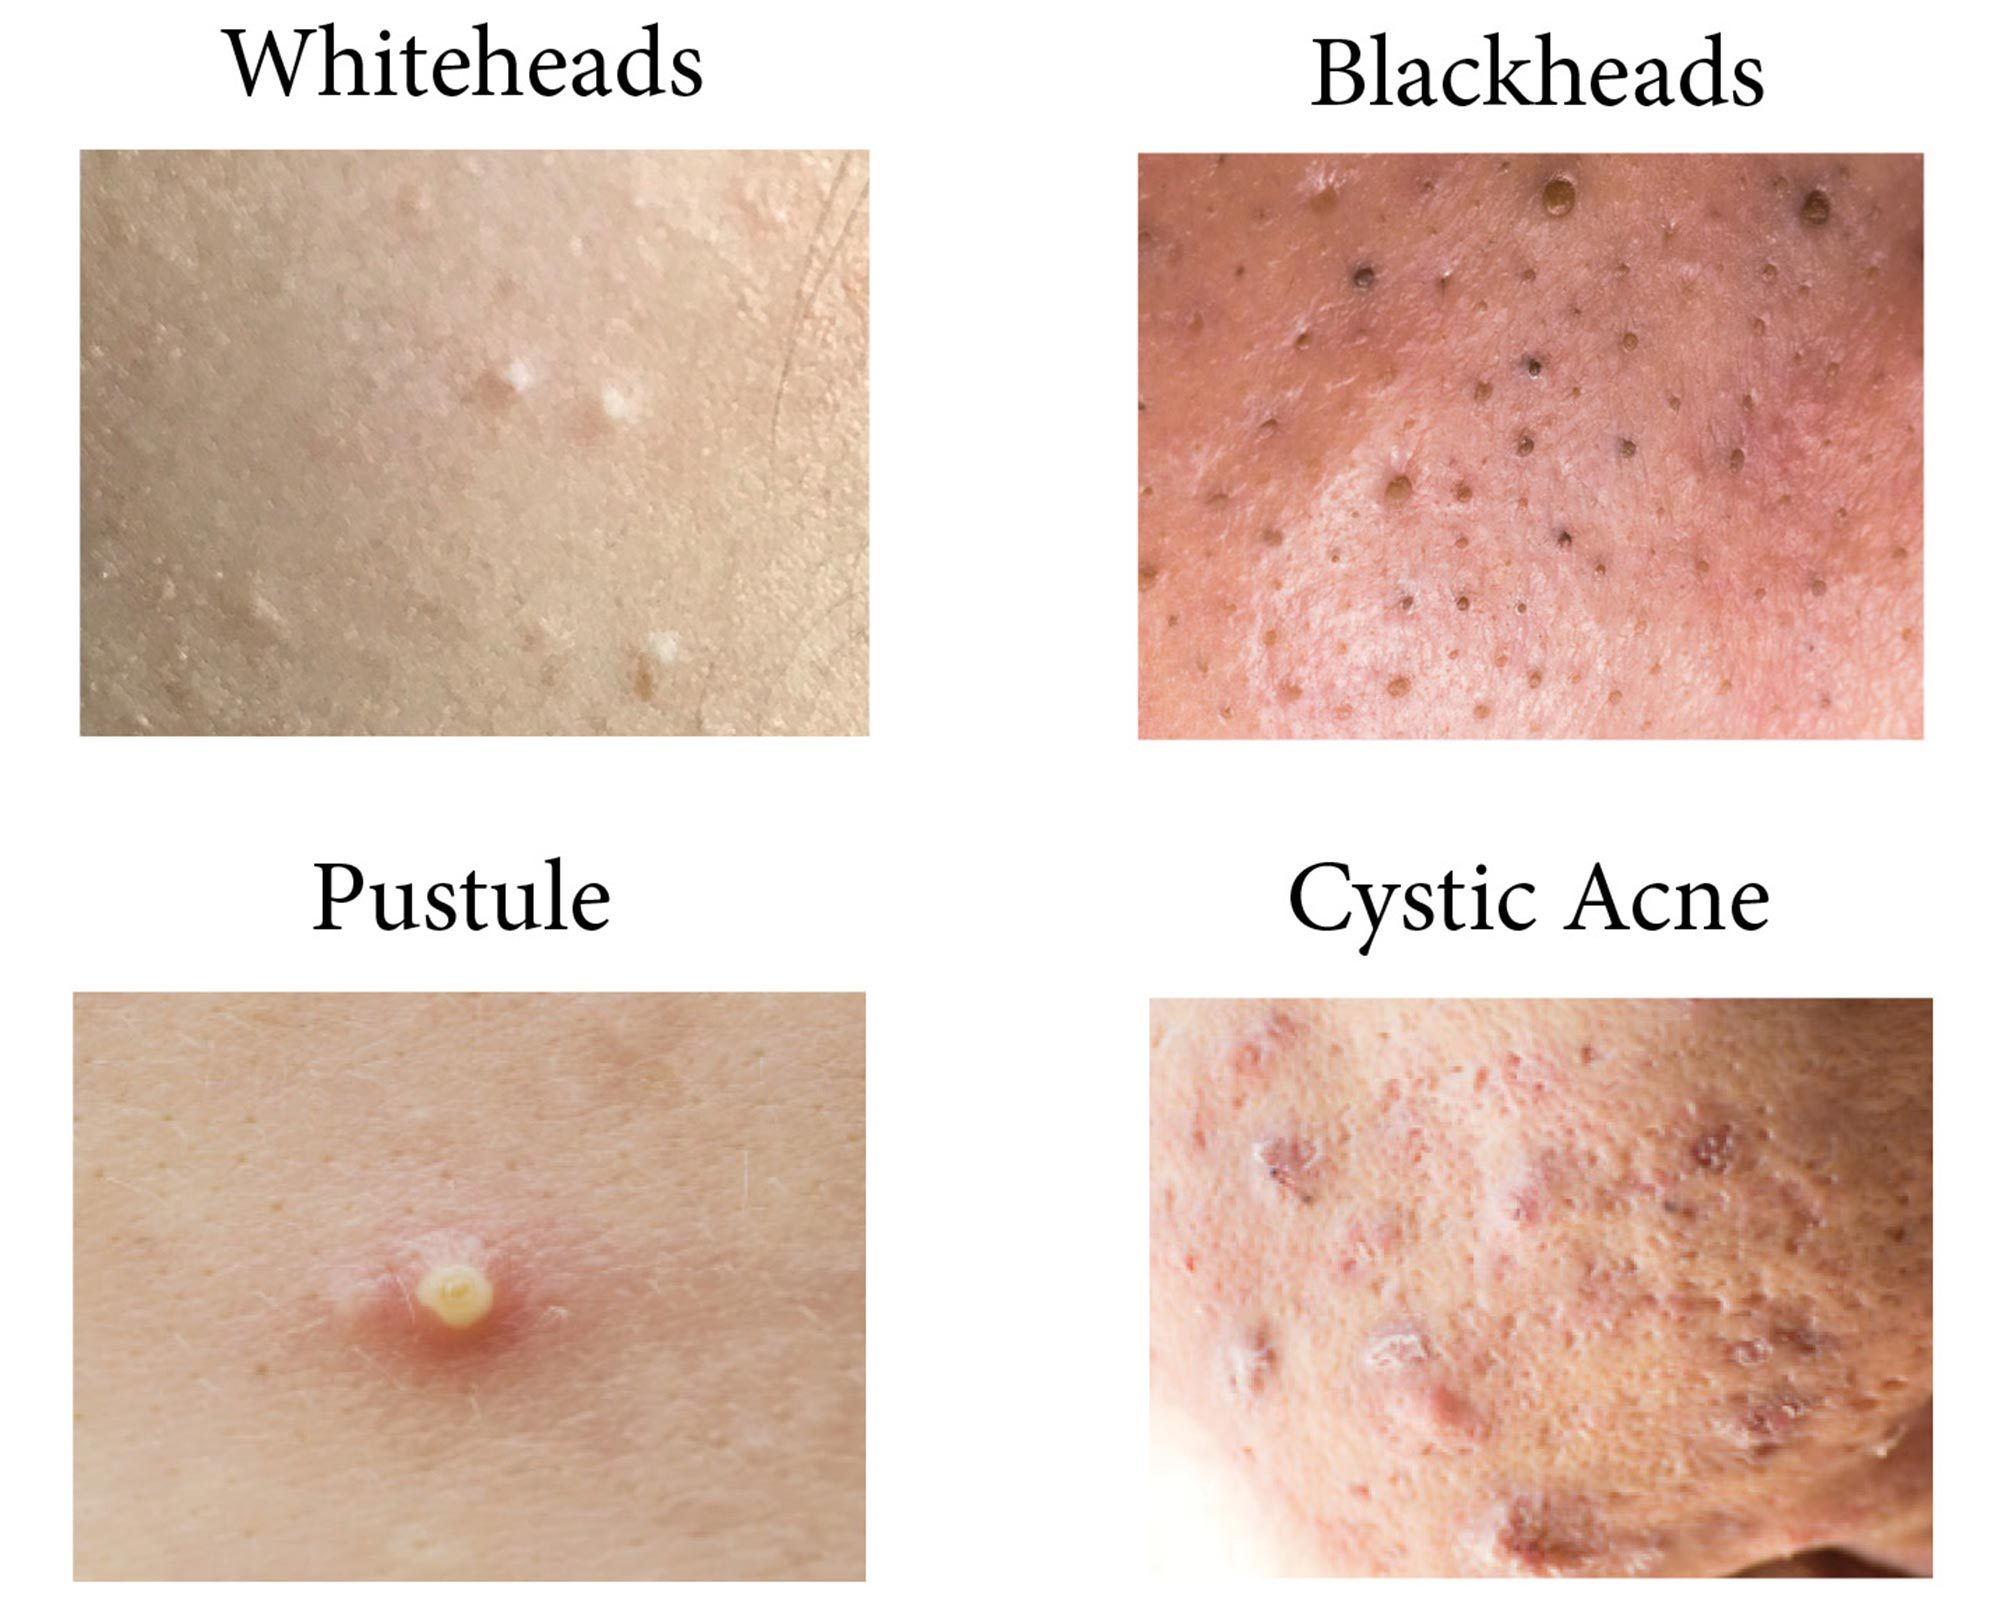 Difference between cystic acne and acne